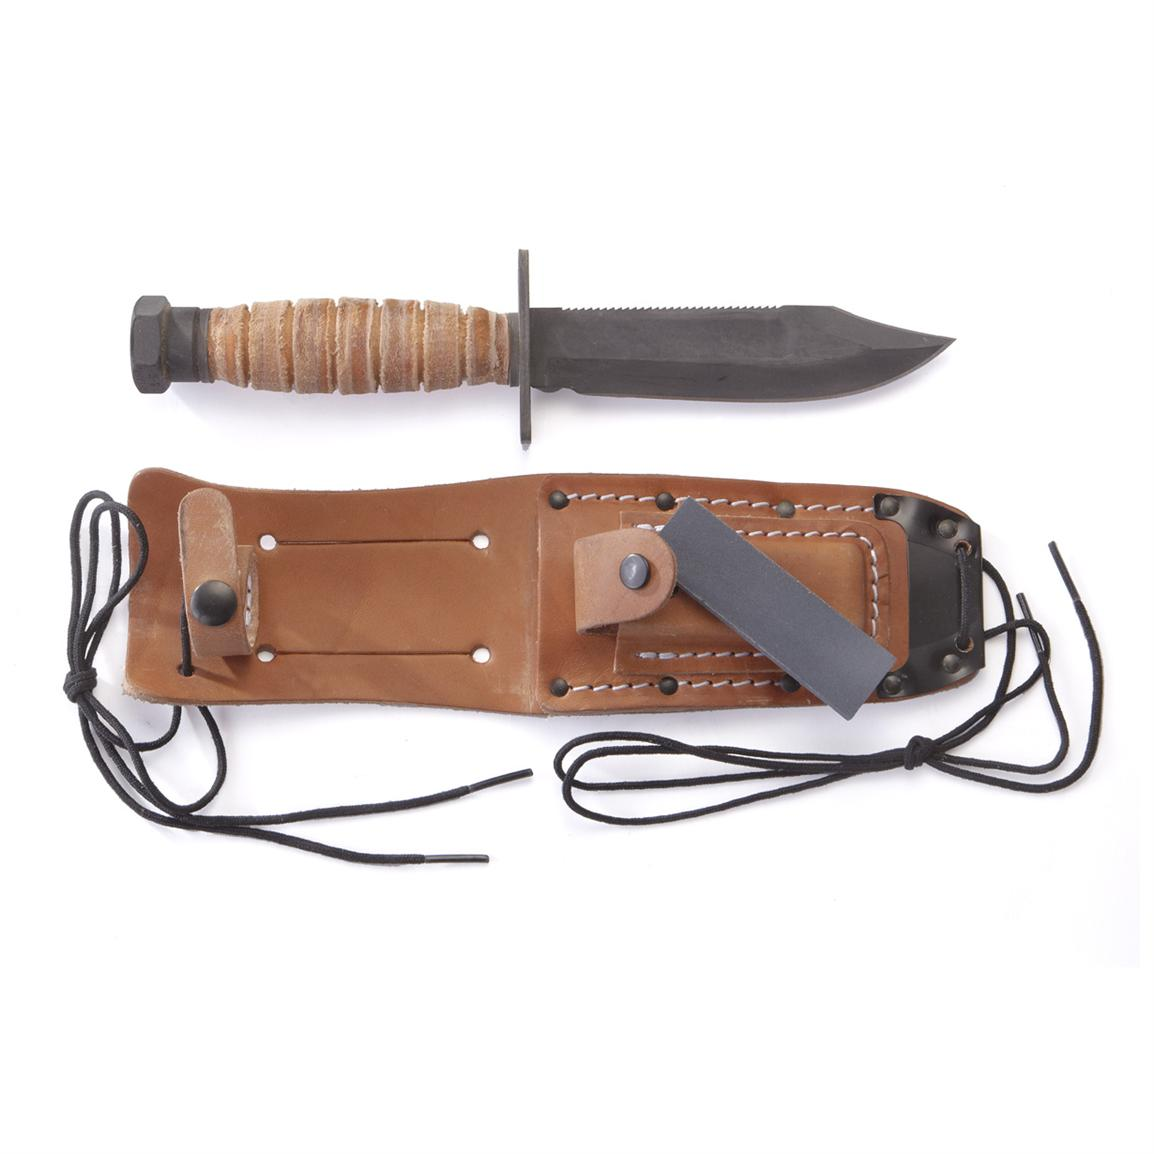 A Short History of the Air Force Survival Knife